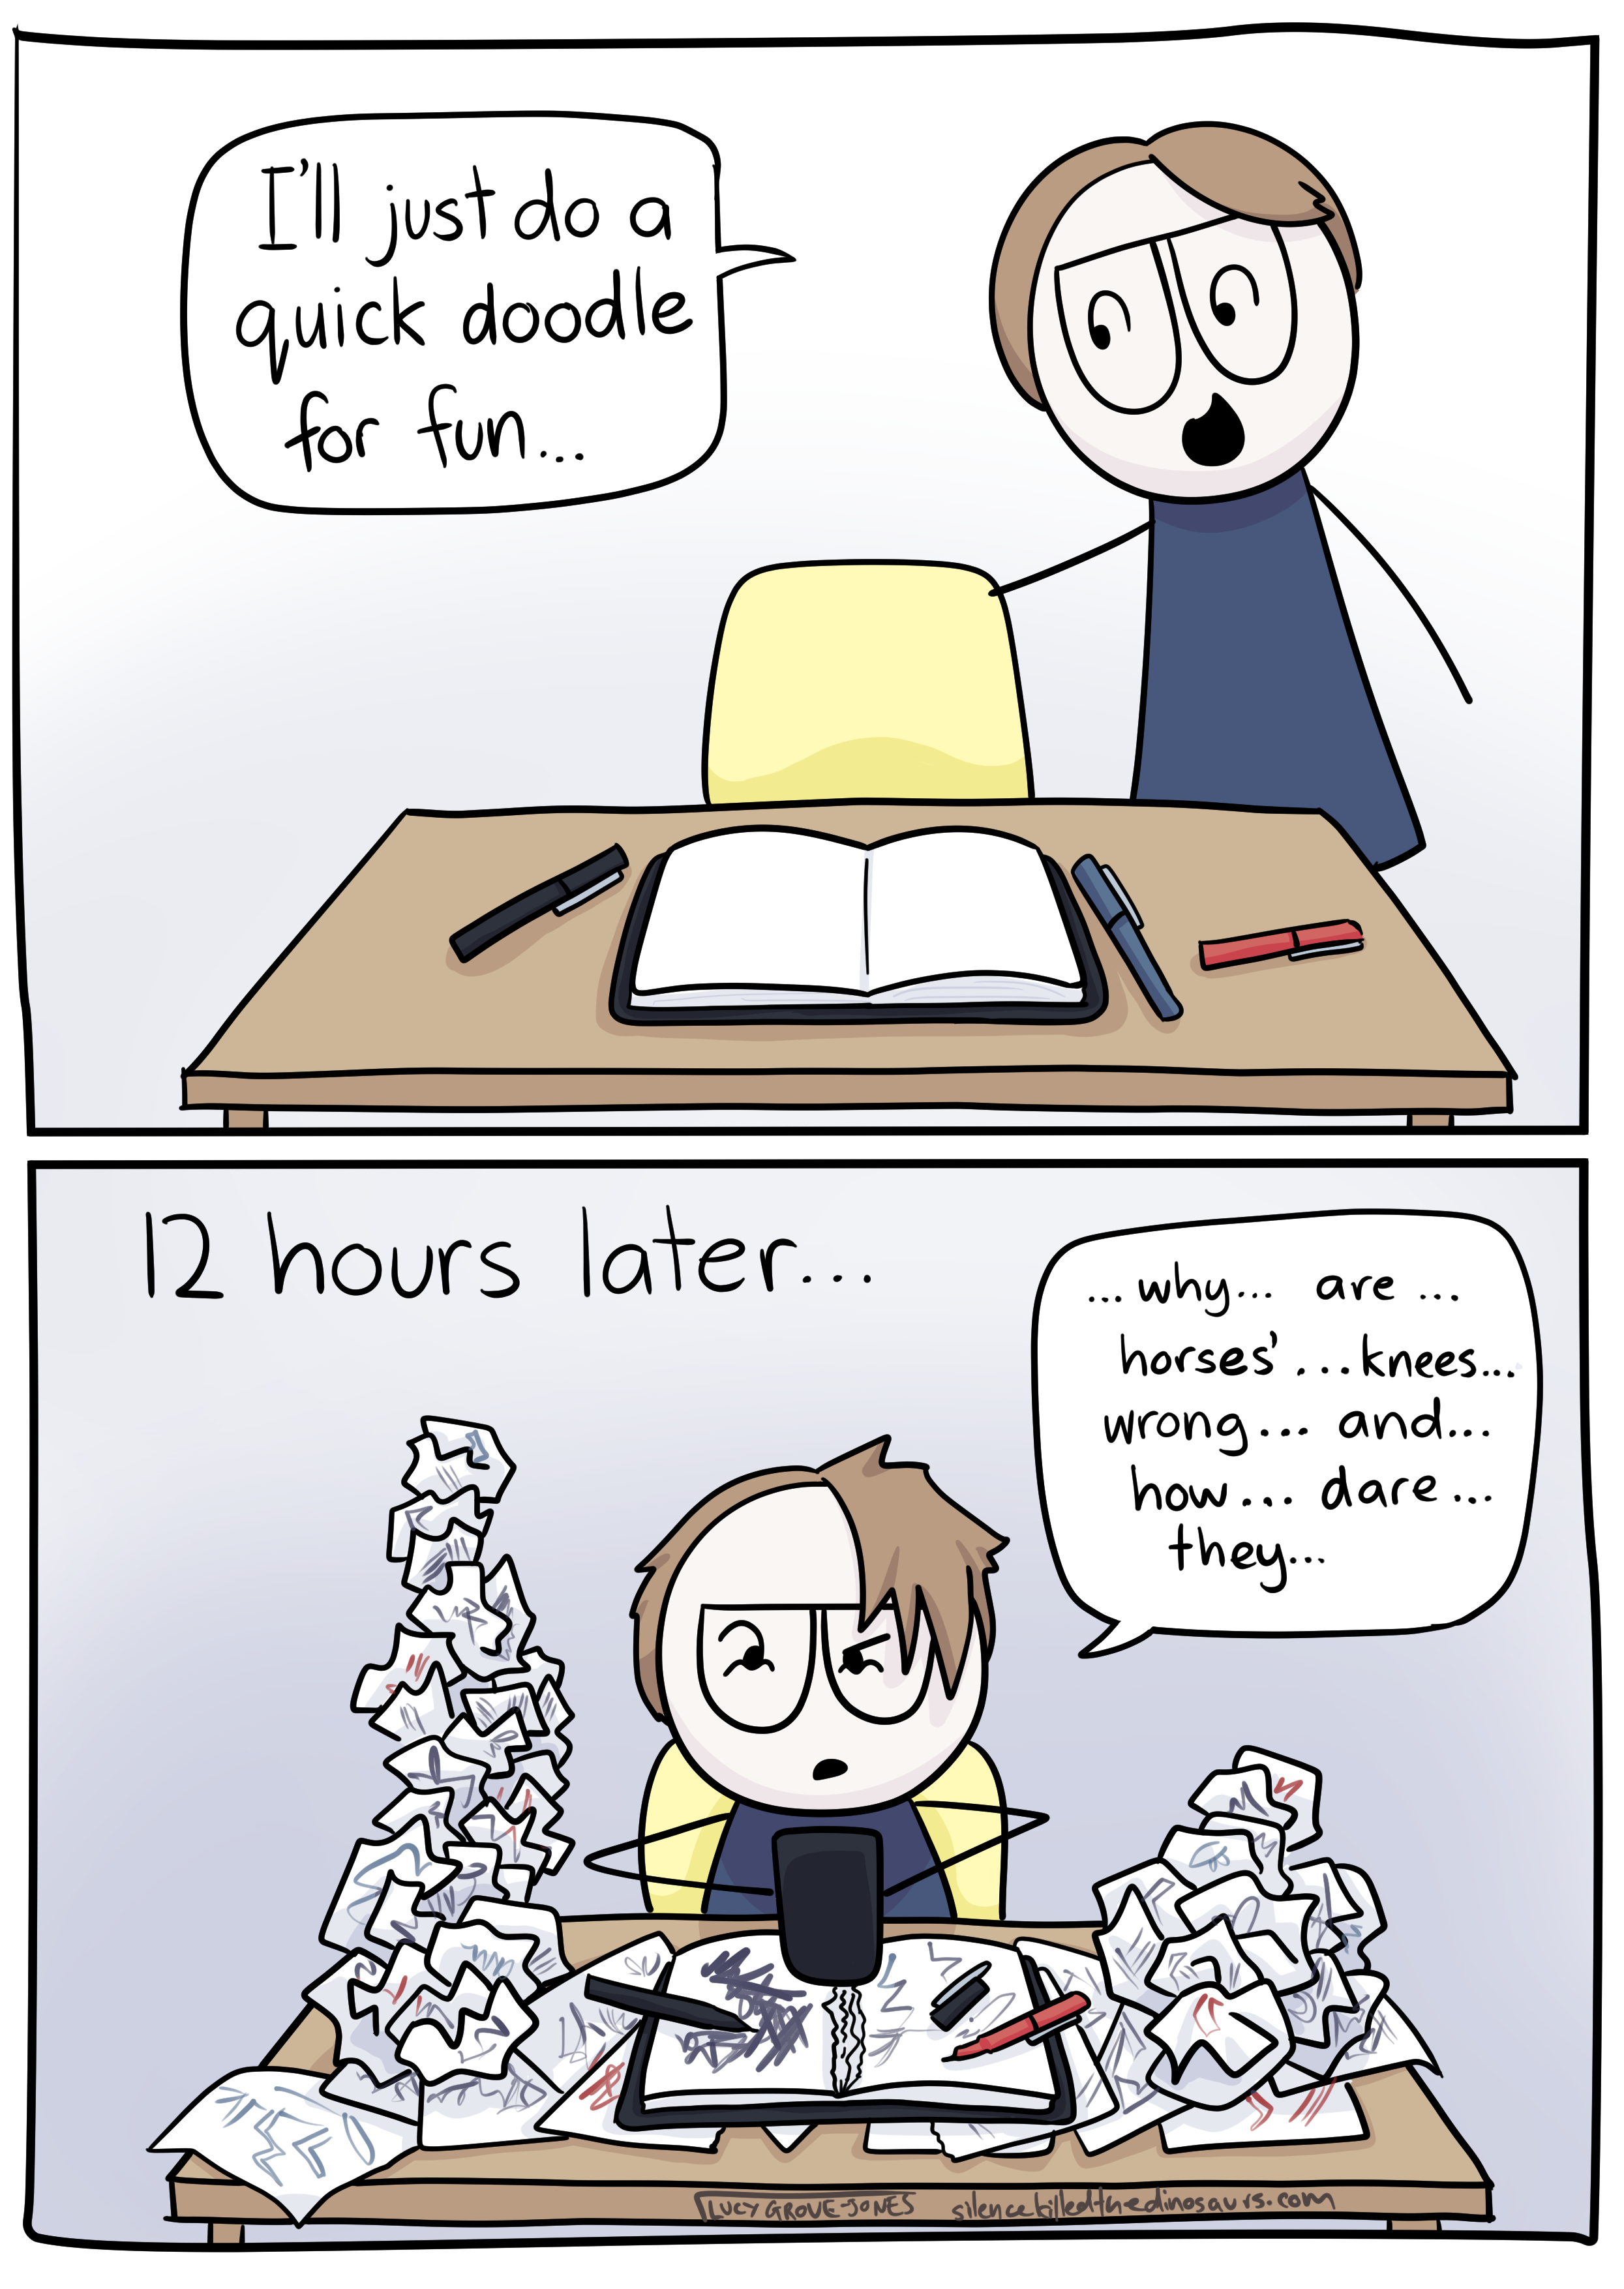 """2 panels. In the first, cartoon-Lucy approaches her desk where there is a sketchbook and pens. She says """"I'll just do a quick doodle for fun"""". Panel 2: Text says """"12 hours later...' Cartoon-Lucy now looks tired and stressed. Bunched up pieces of paper with scribbles on them mound up all over the desk. Lucy is typing on her phone saying """"why ... are ... horses' ... knees ... wrong ... and ... how ... dare ... they"""""""